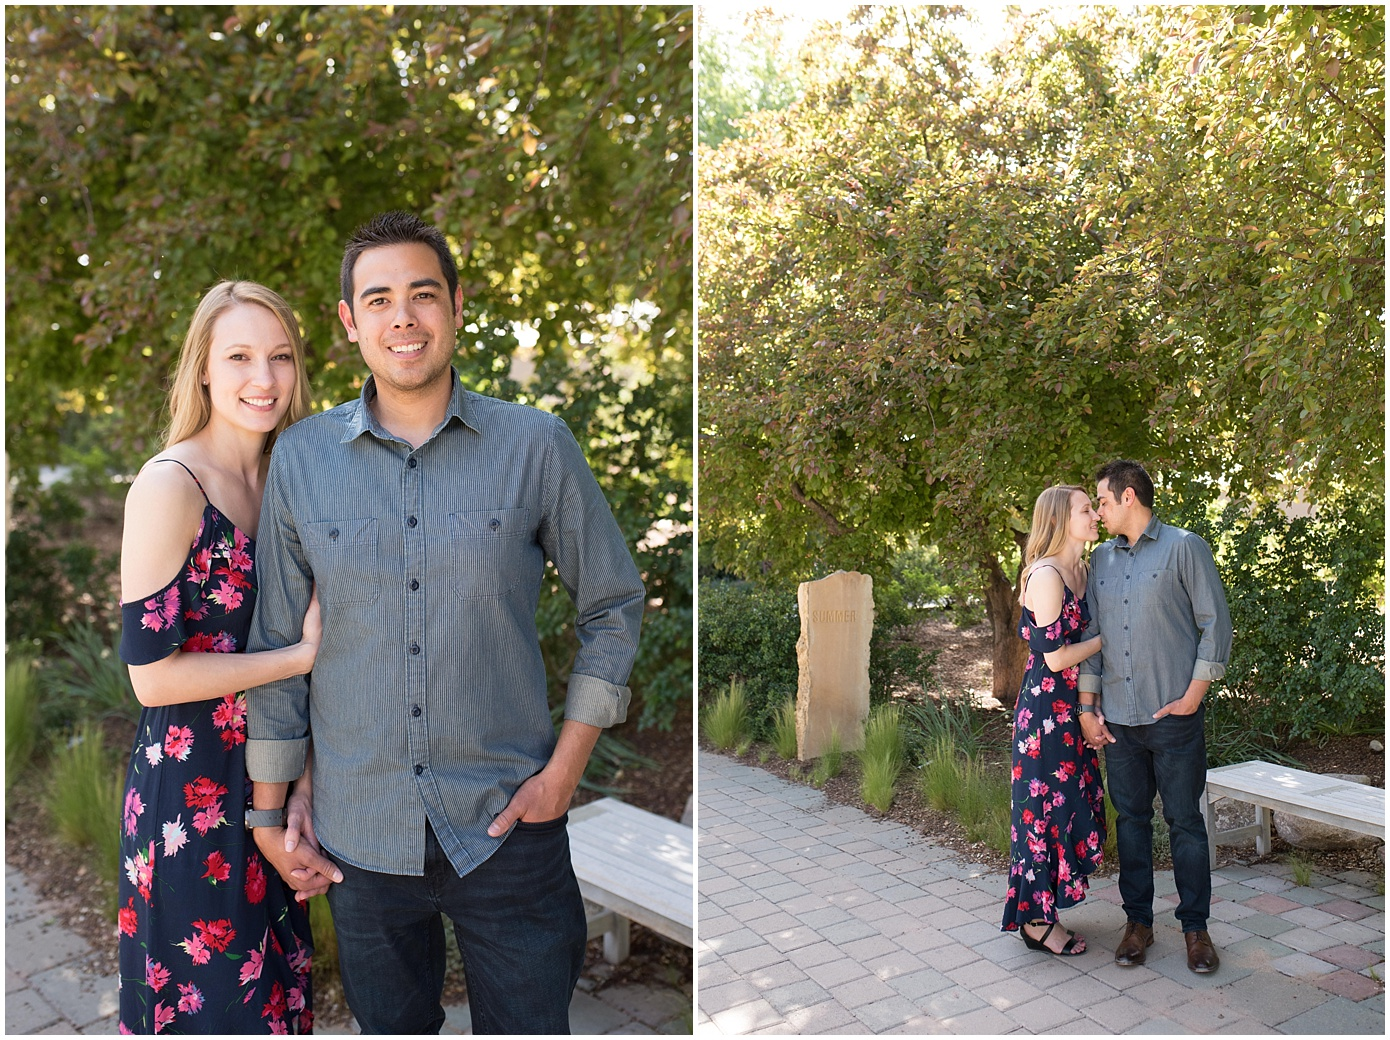 kayla kitts photography-kristi-sam-botanic-gardens-sandia-lakes-albuquerque-engagement_0010.jpg